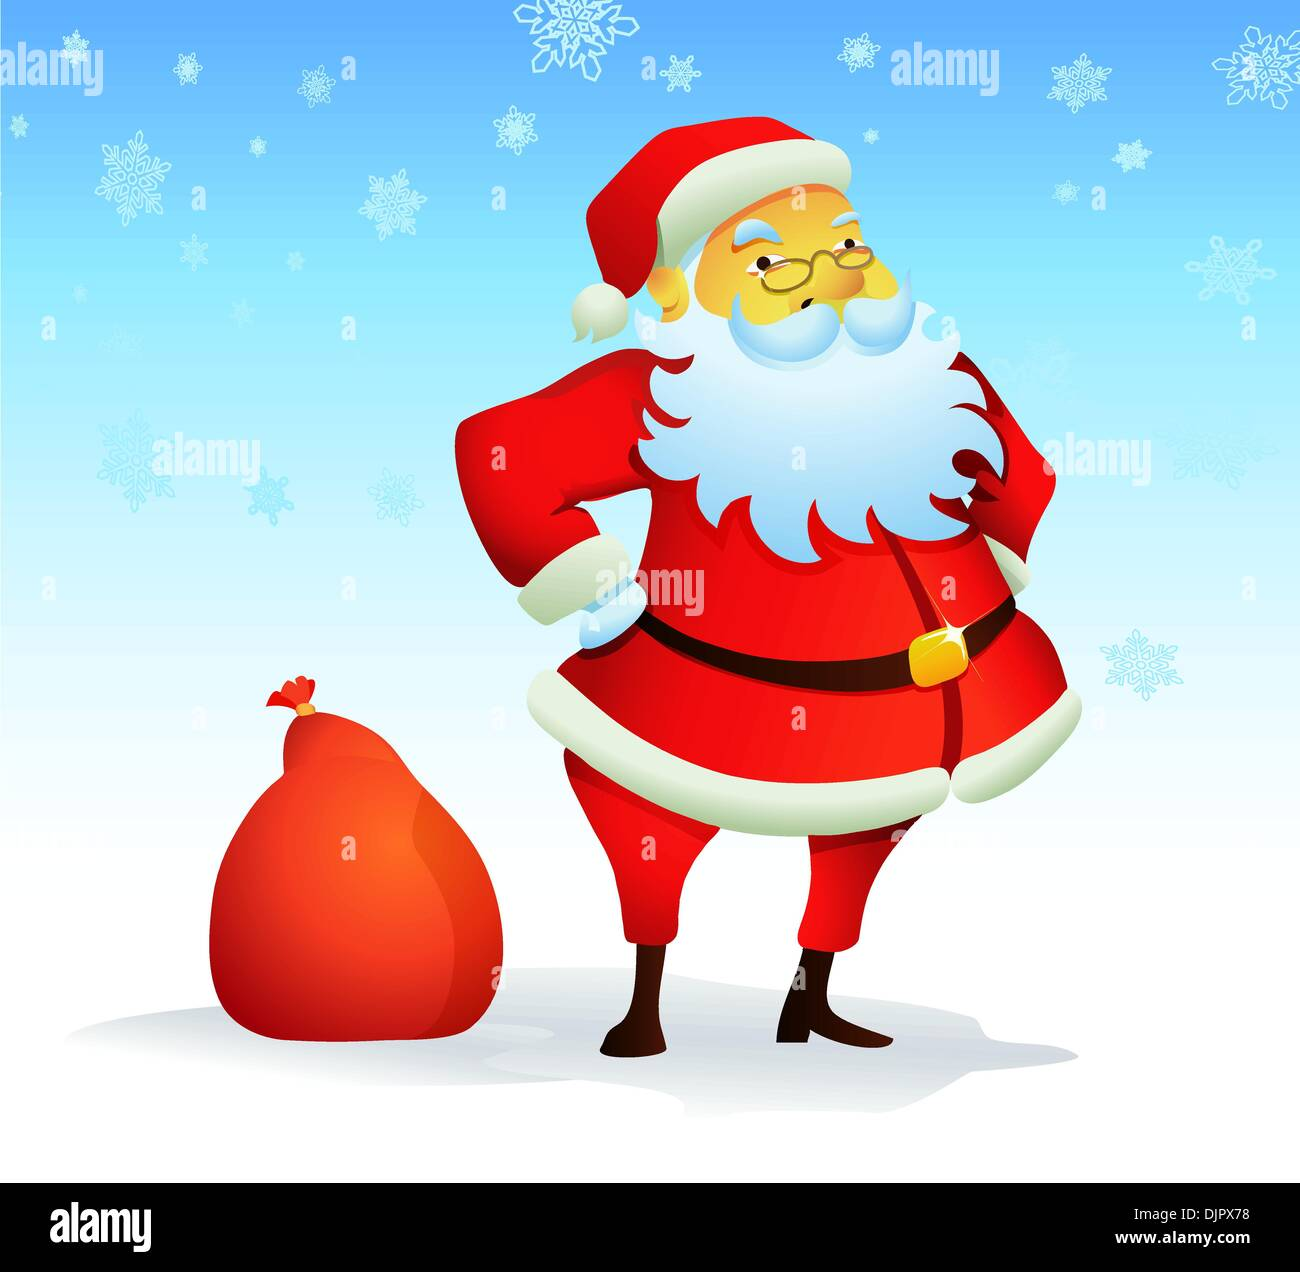 Vector illustration of Christmas background with Santa Claus and red gift bag - Stock Vector